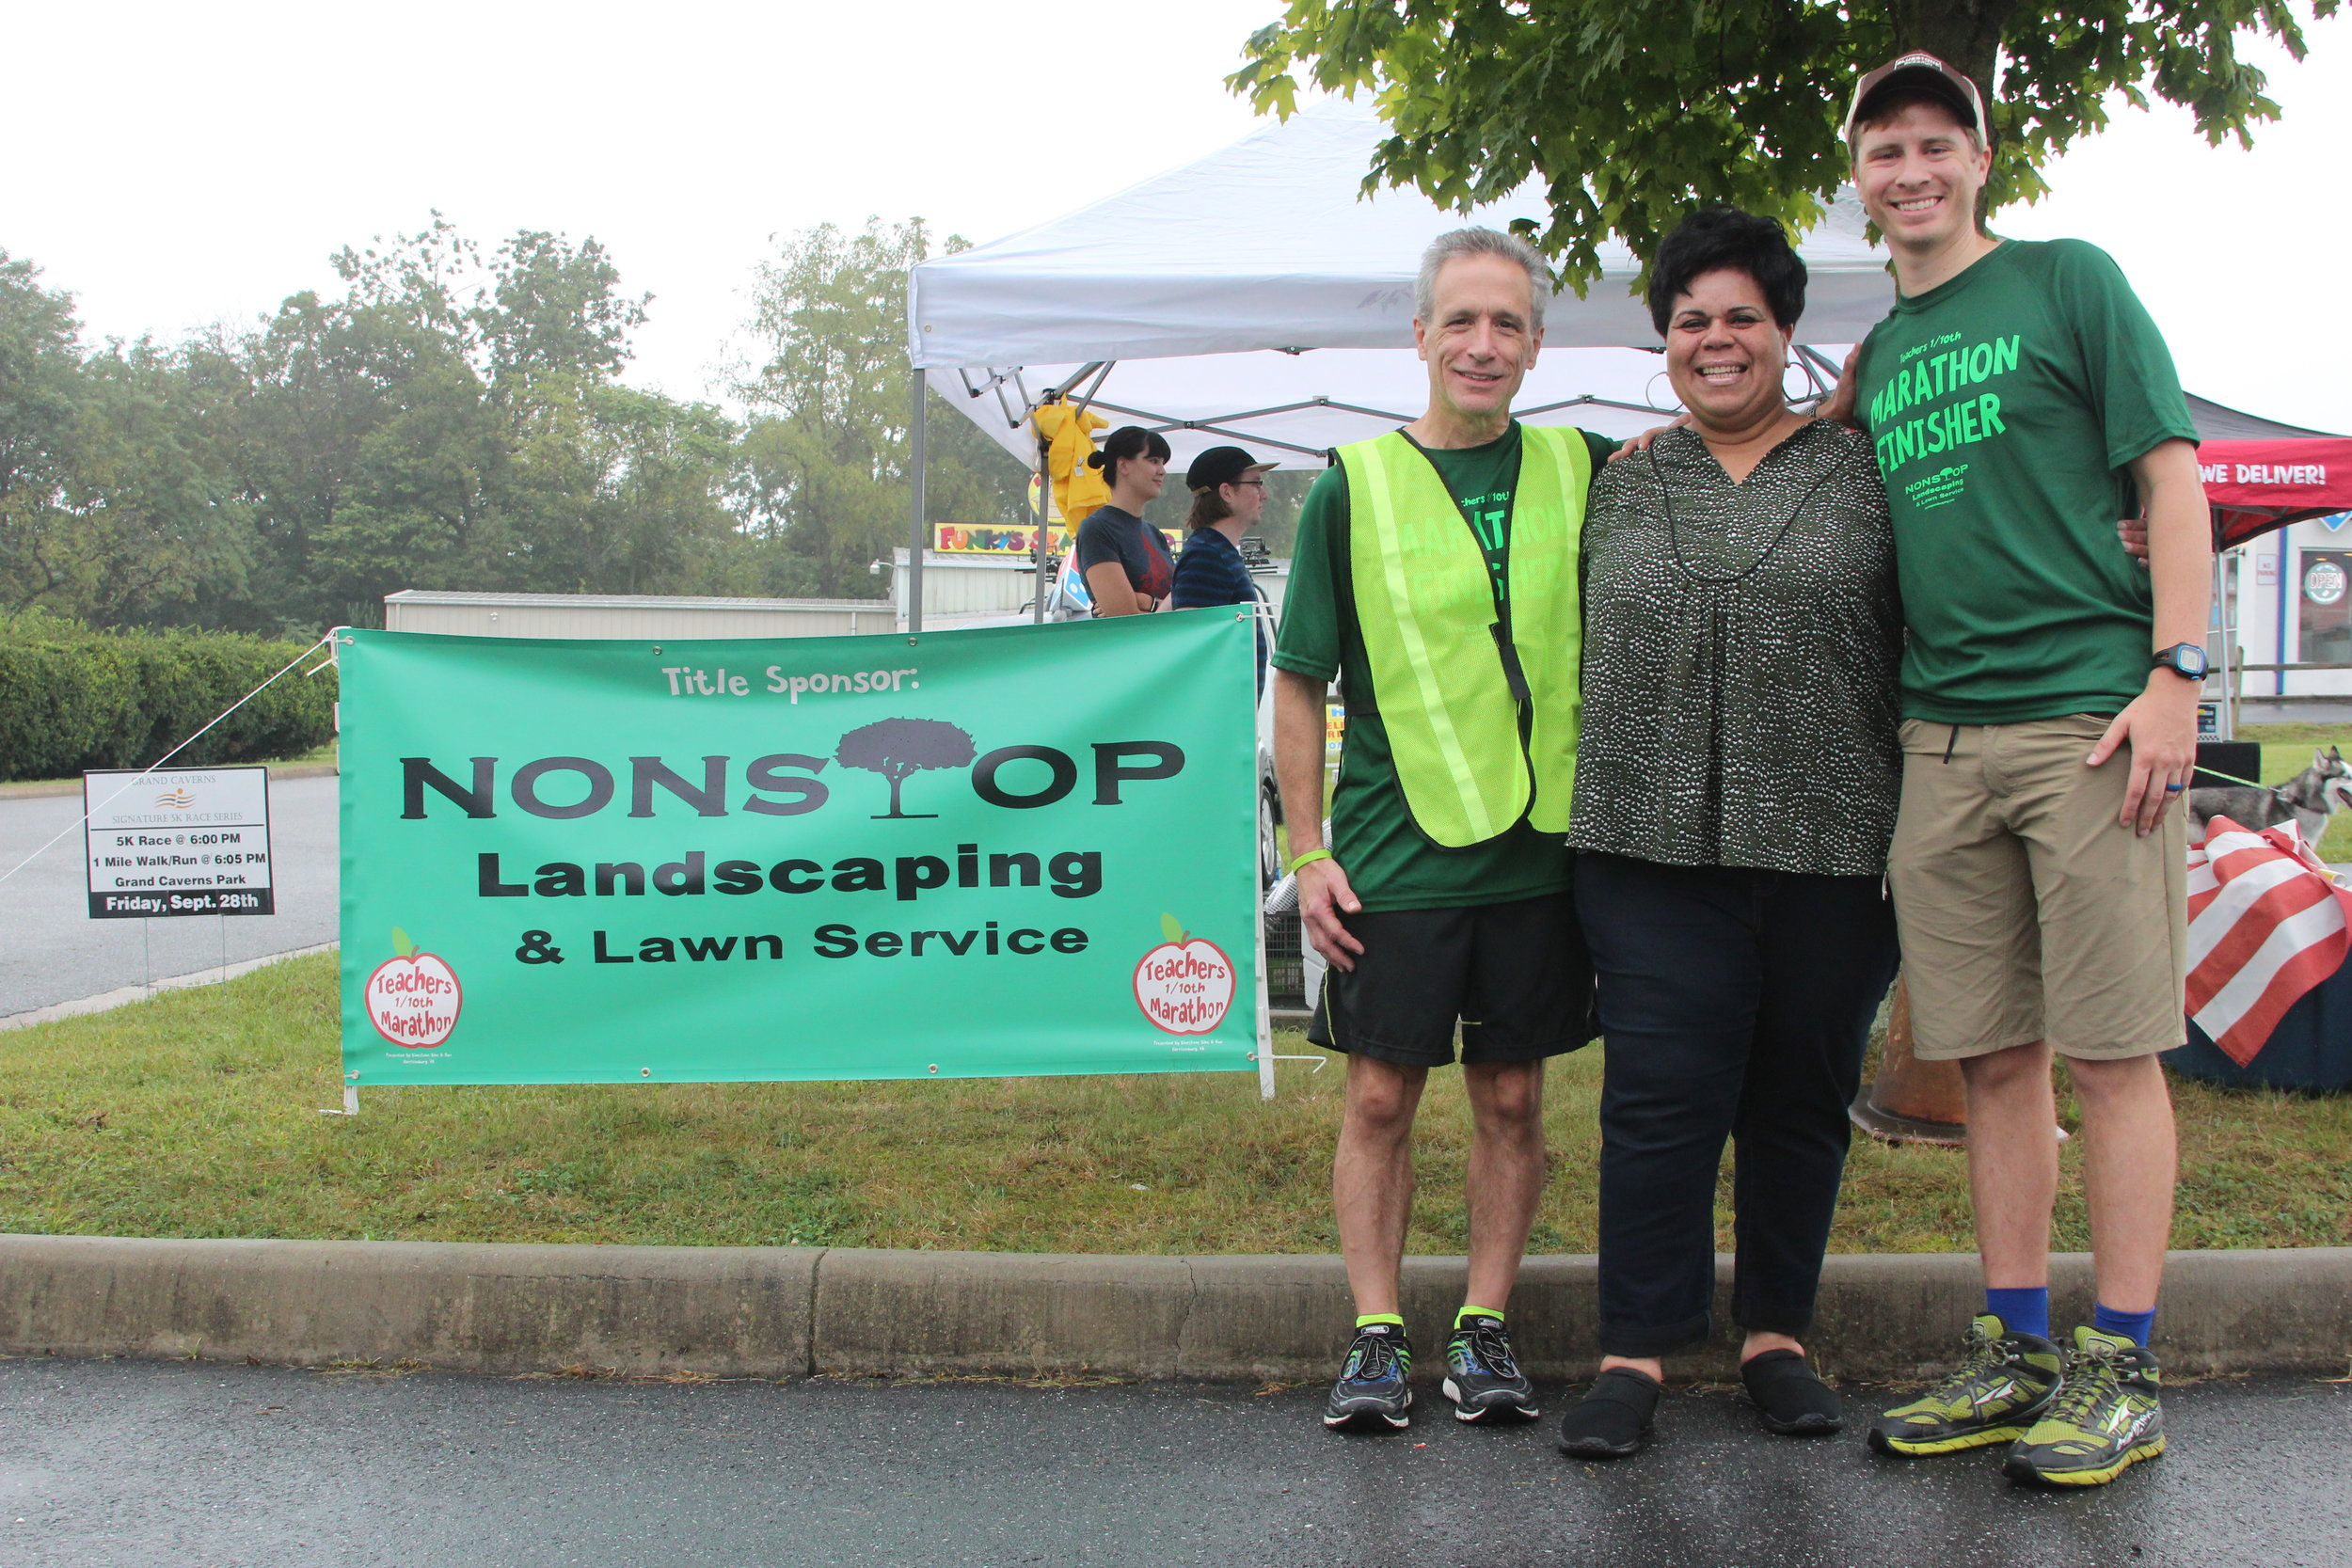 Mayor Reed (center) with Race Organizer, Mike Betts (left) and Bluestone Bike & Run Owner, Kyle Coleman (right).